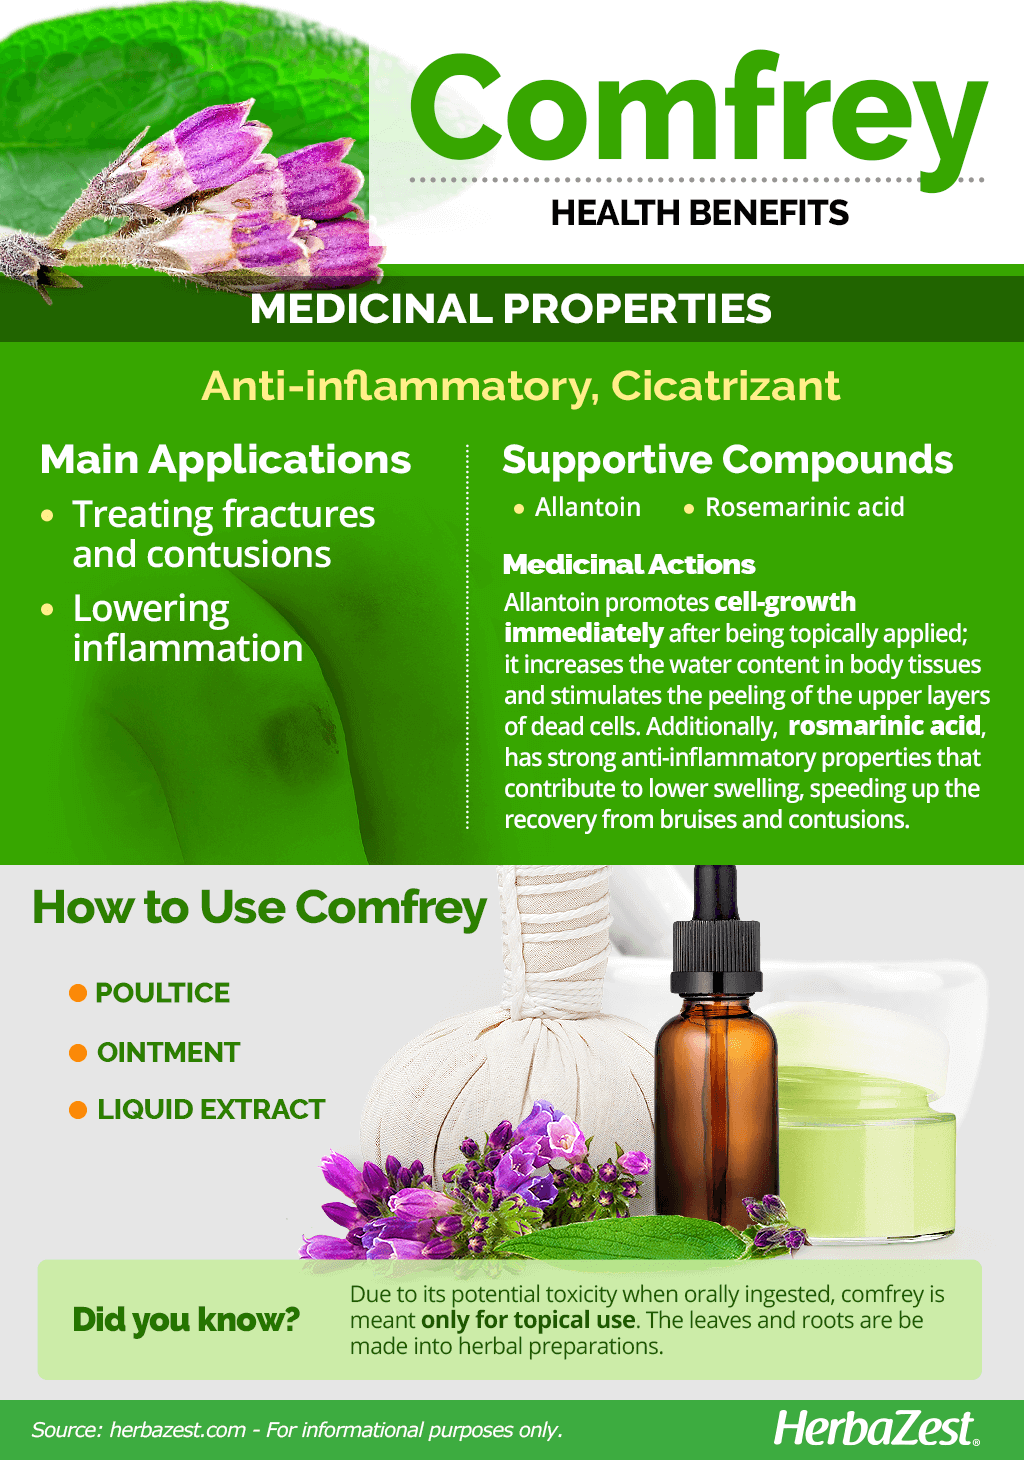 All About Comfrey